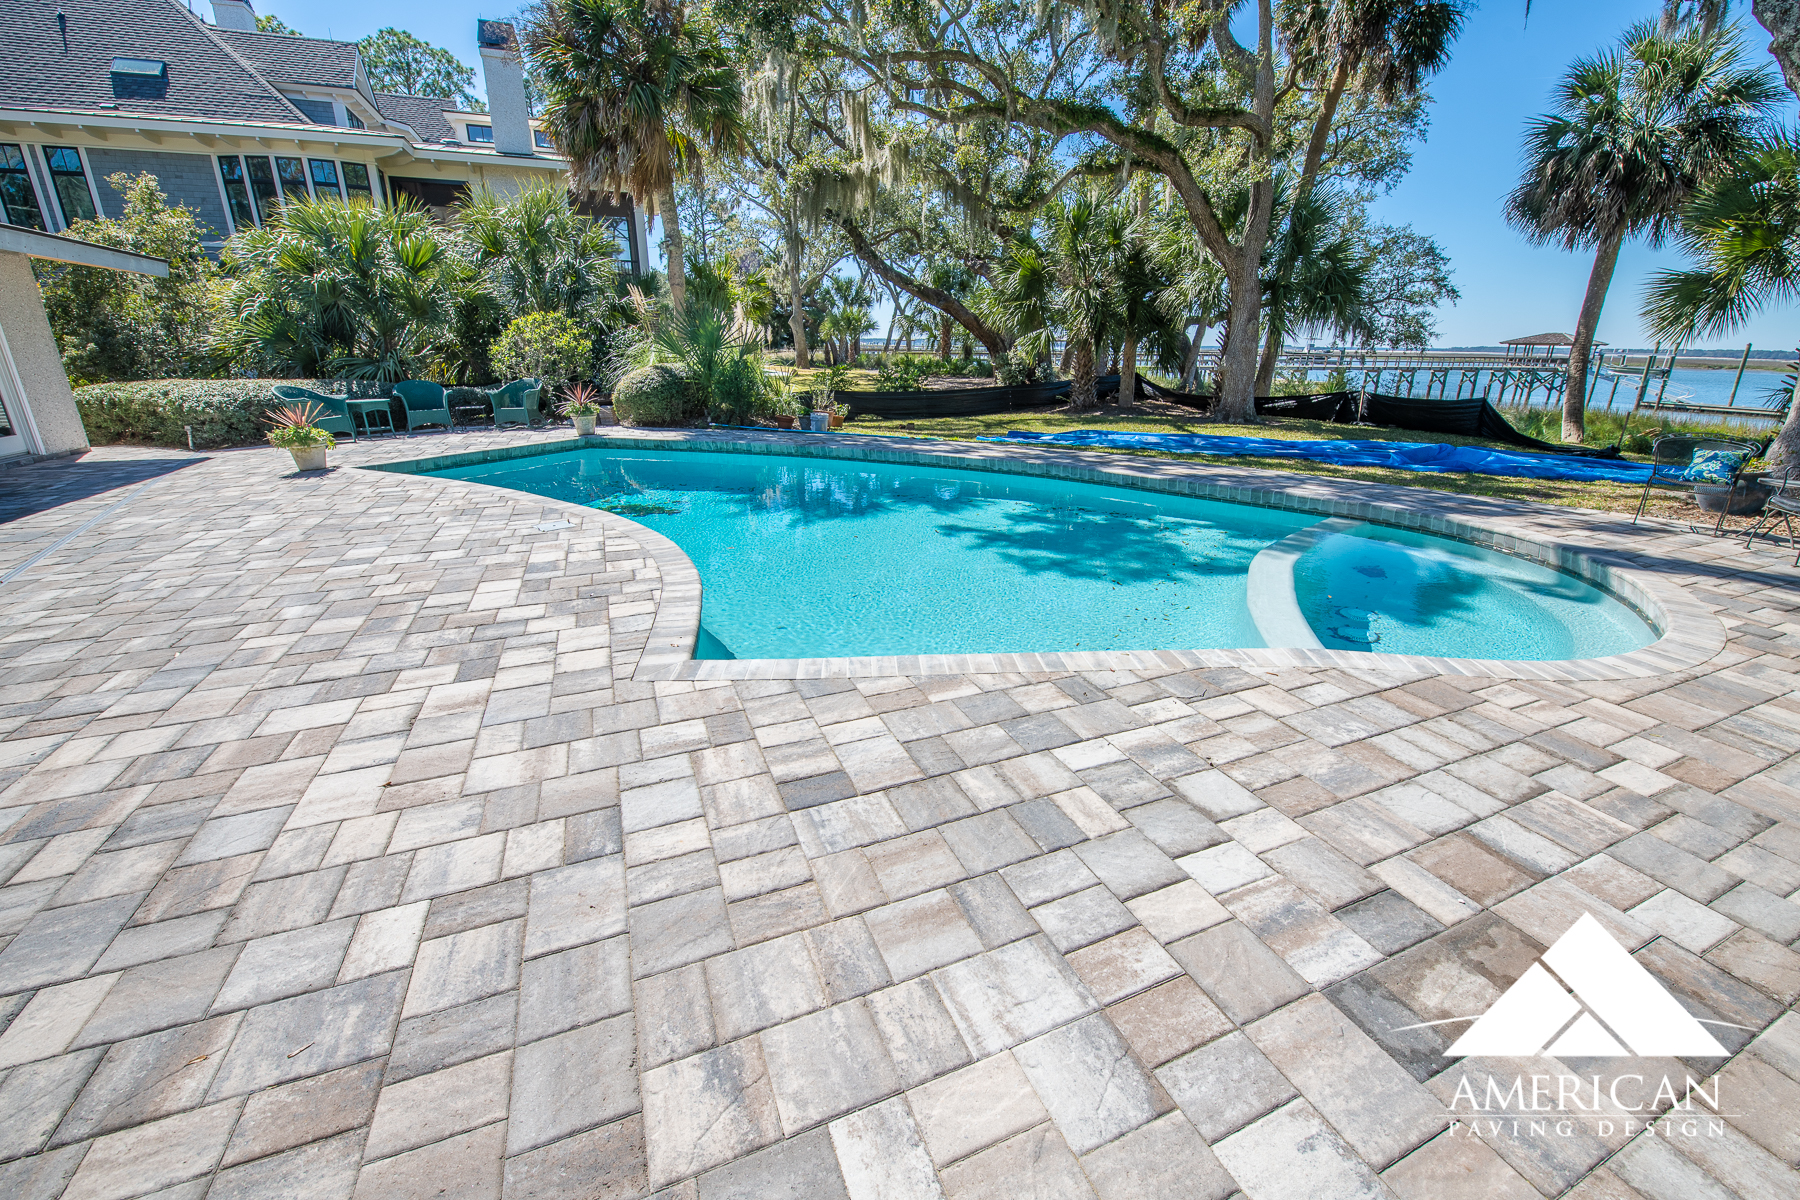 Swimming Pool Remodeling ideas | Paver Pool Deck Resurfacing ...